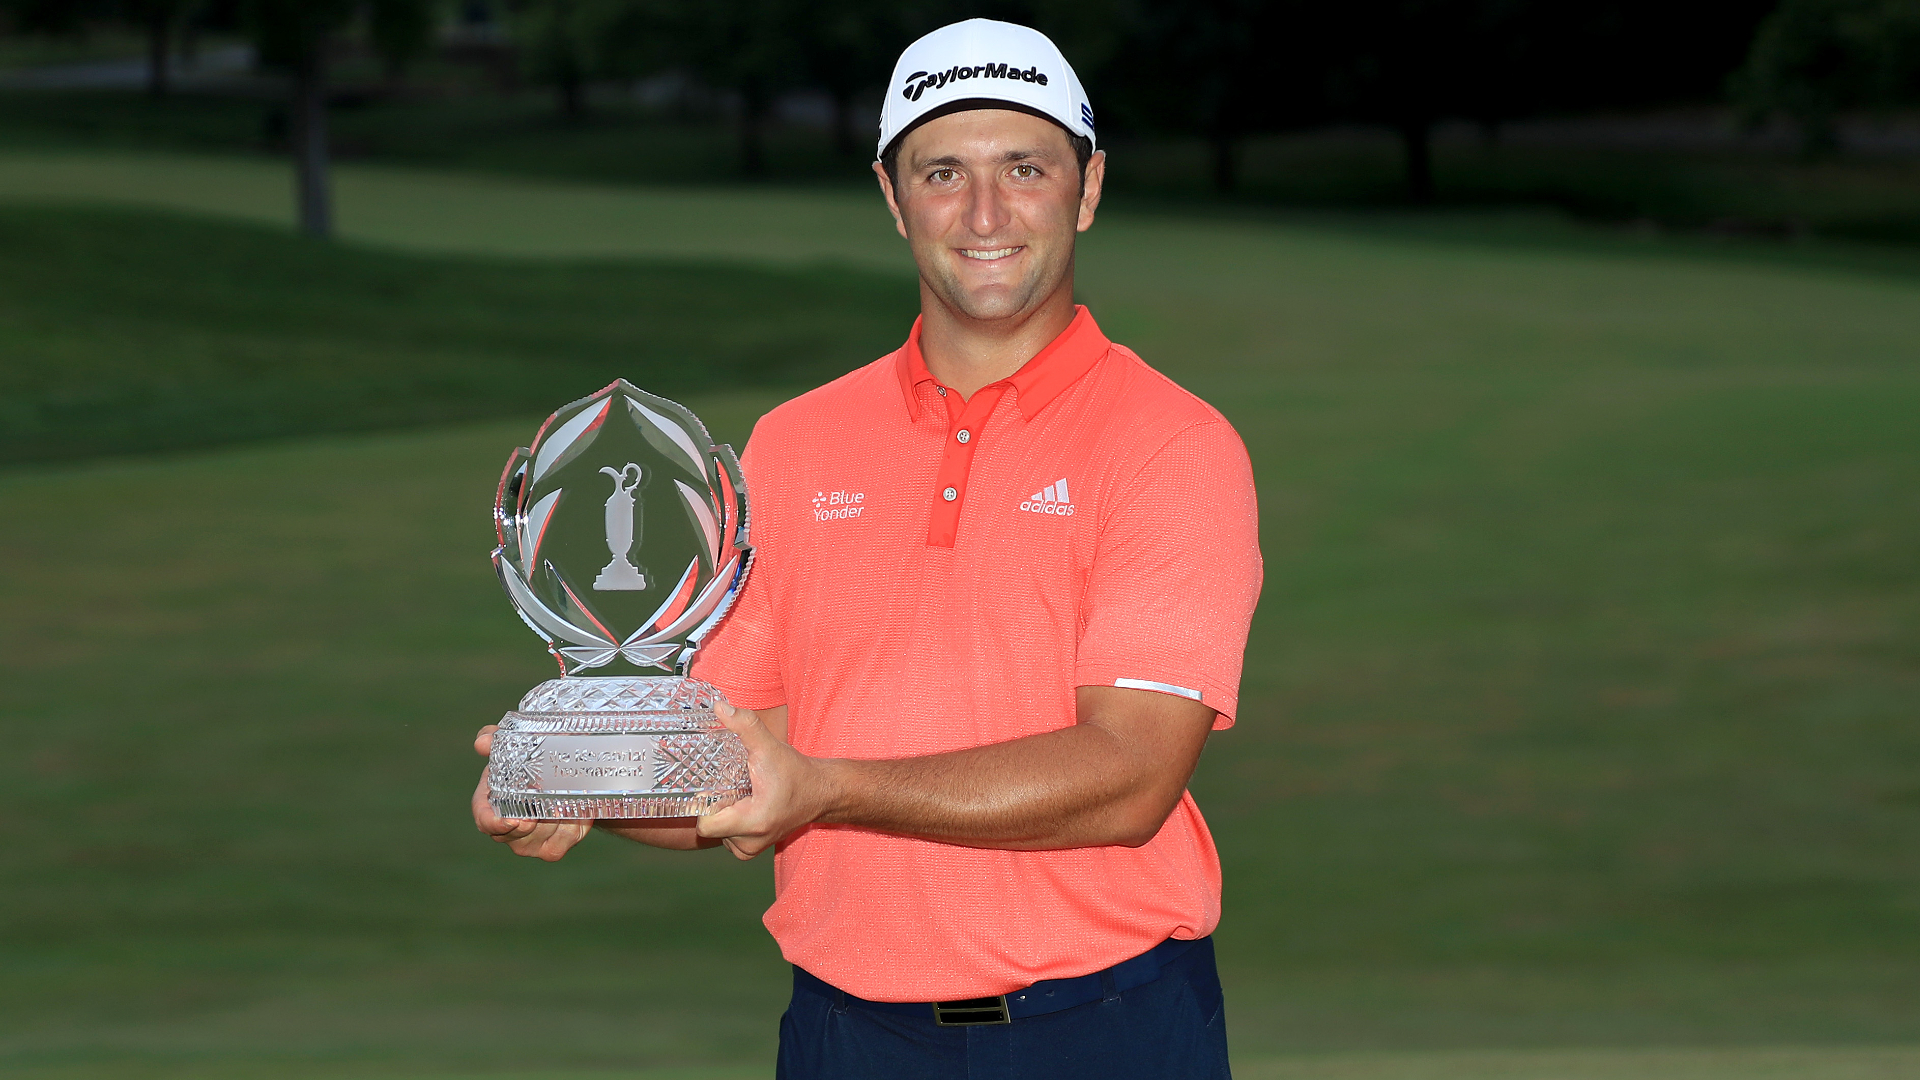 Jon Rahm moves past penalty, claims world No. 1 spot with Memorial win 1